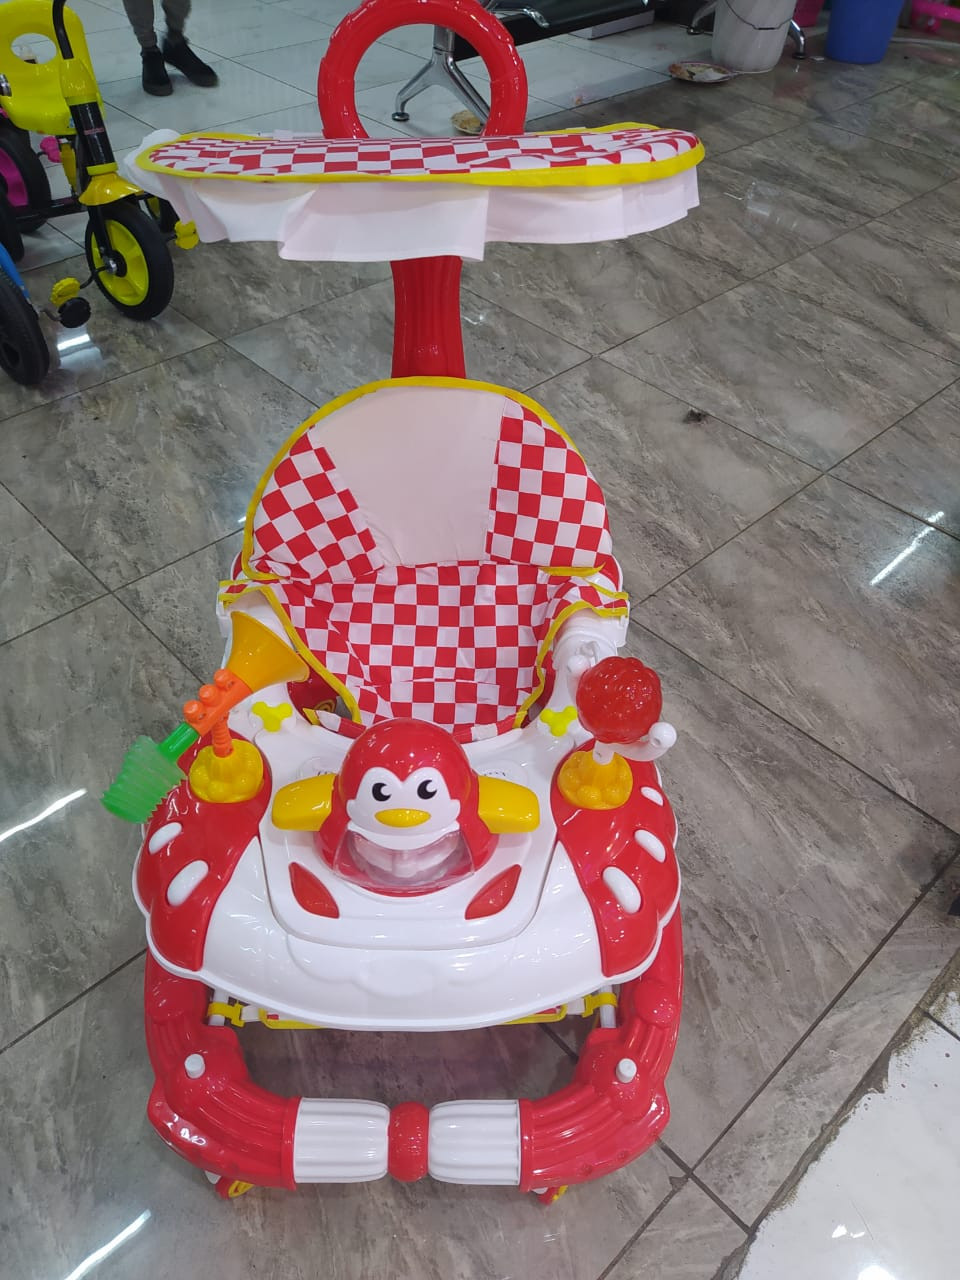 Baby walker with rocker, umbrella, push handle and lights{red}